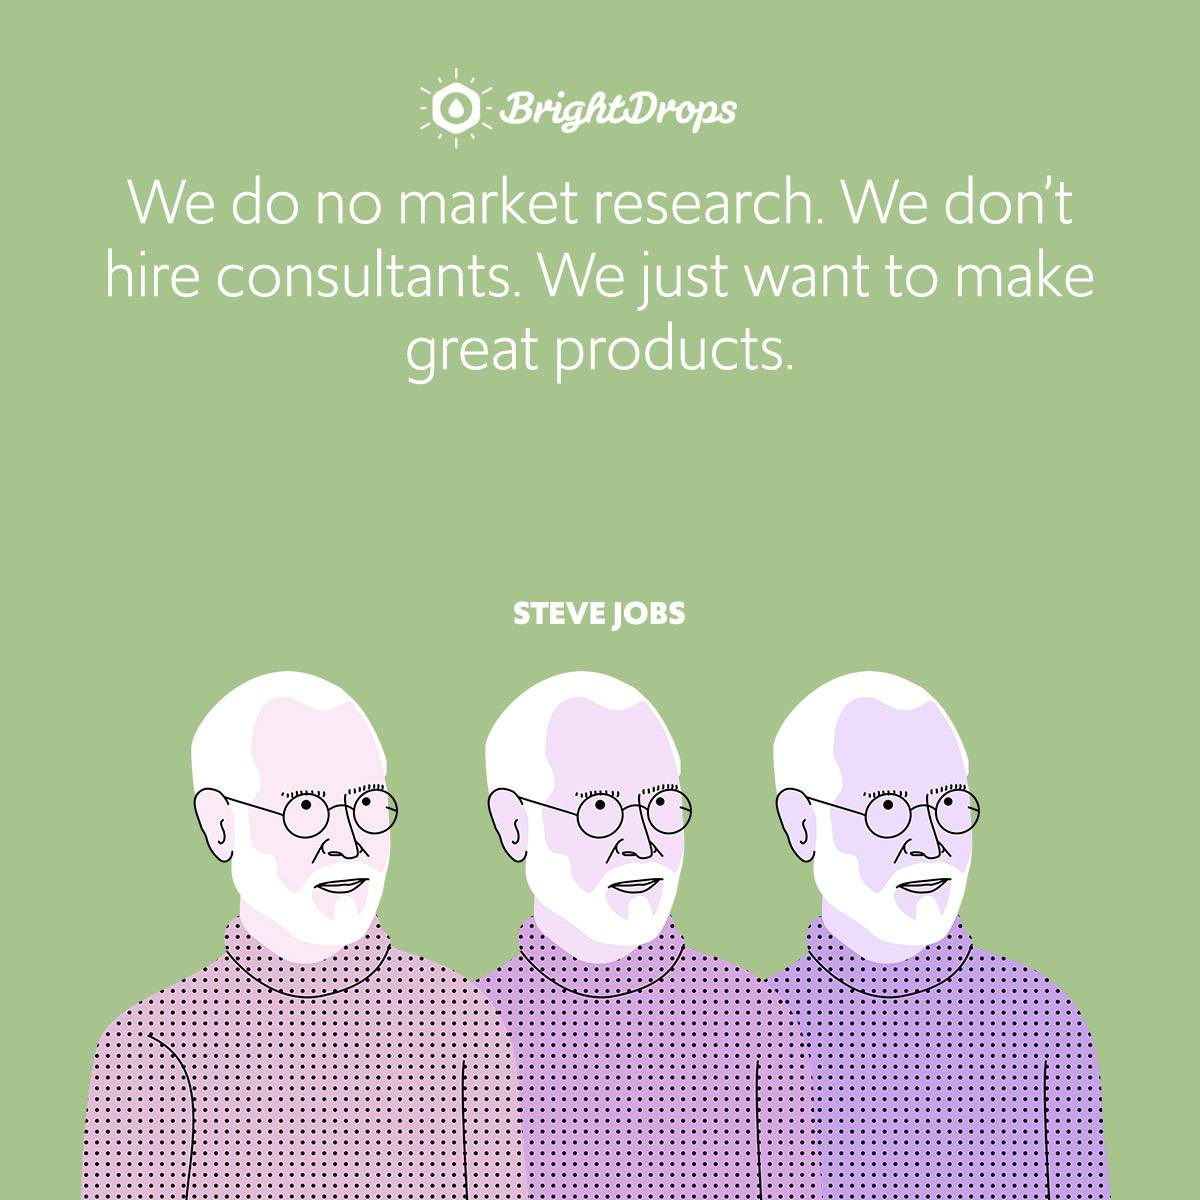 We do no market research. We don't hire consultants. We just want to make great products.